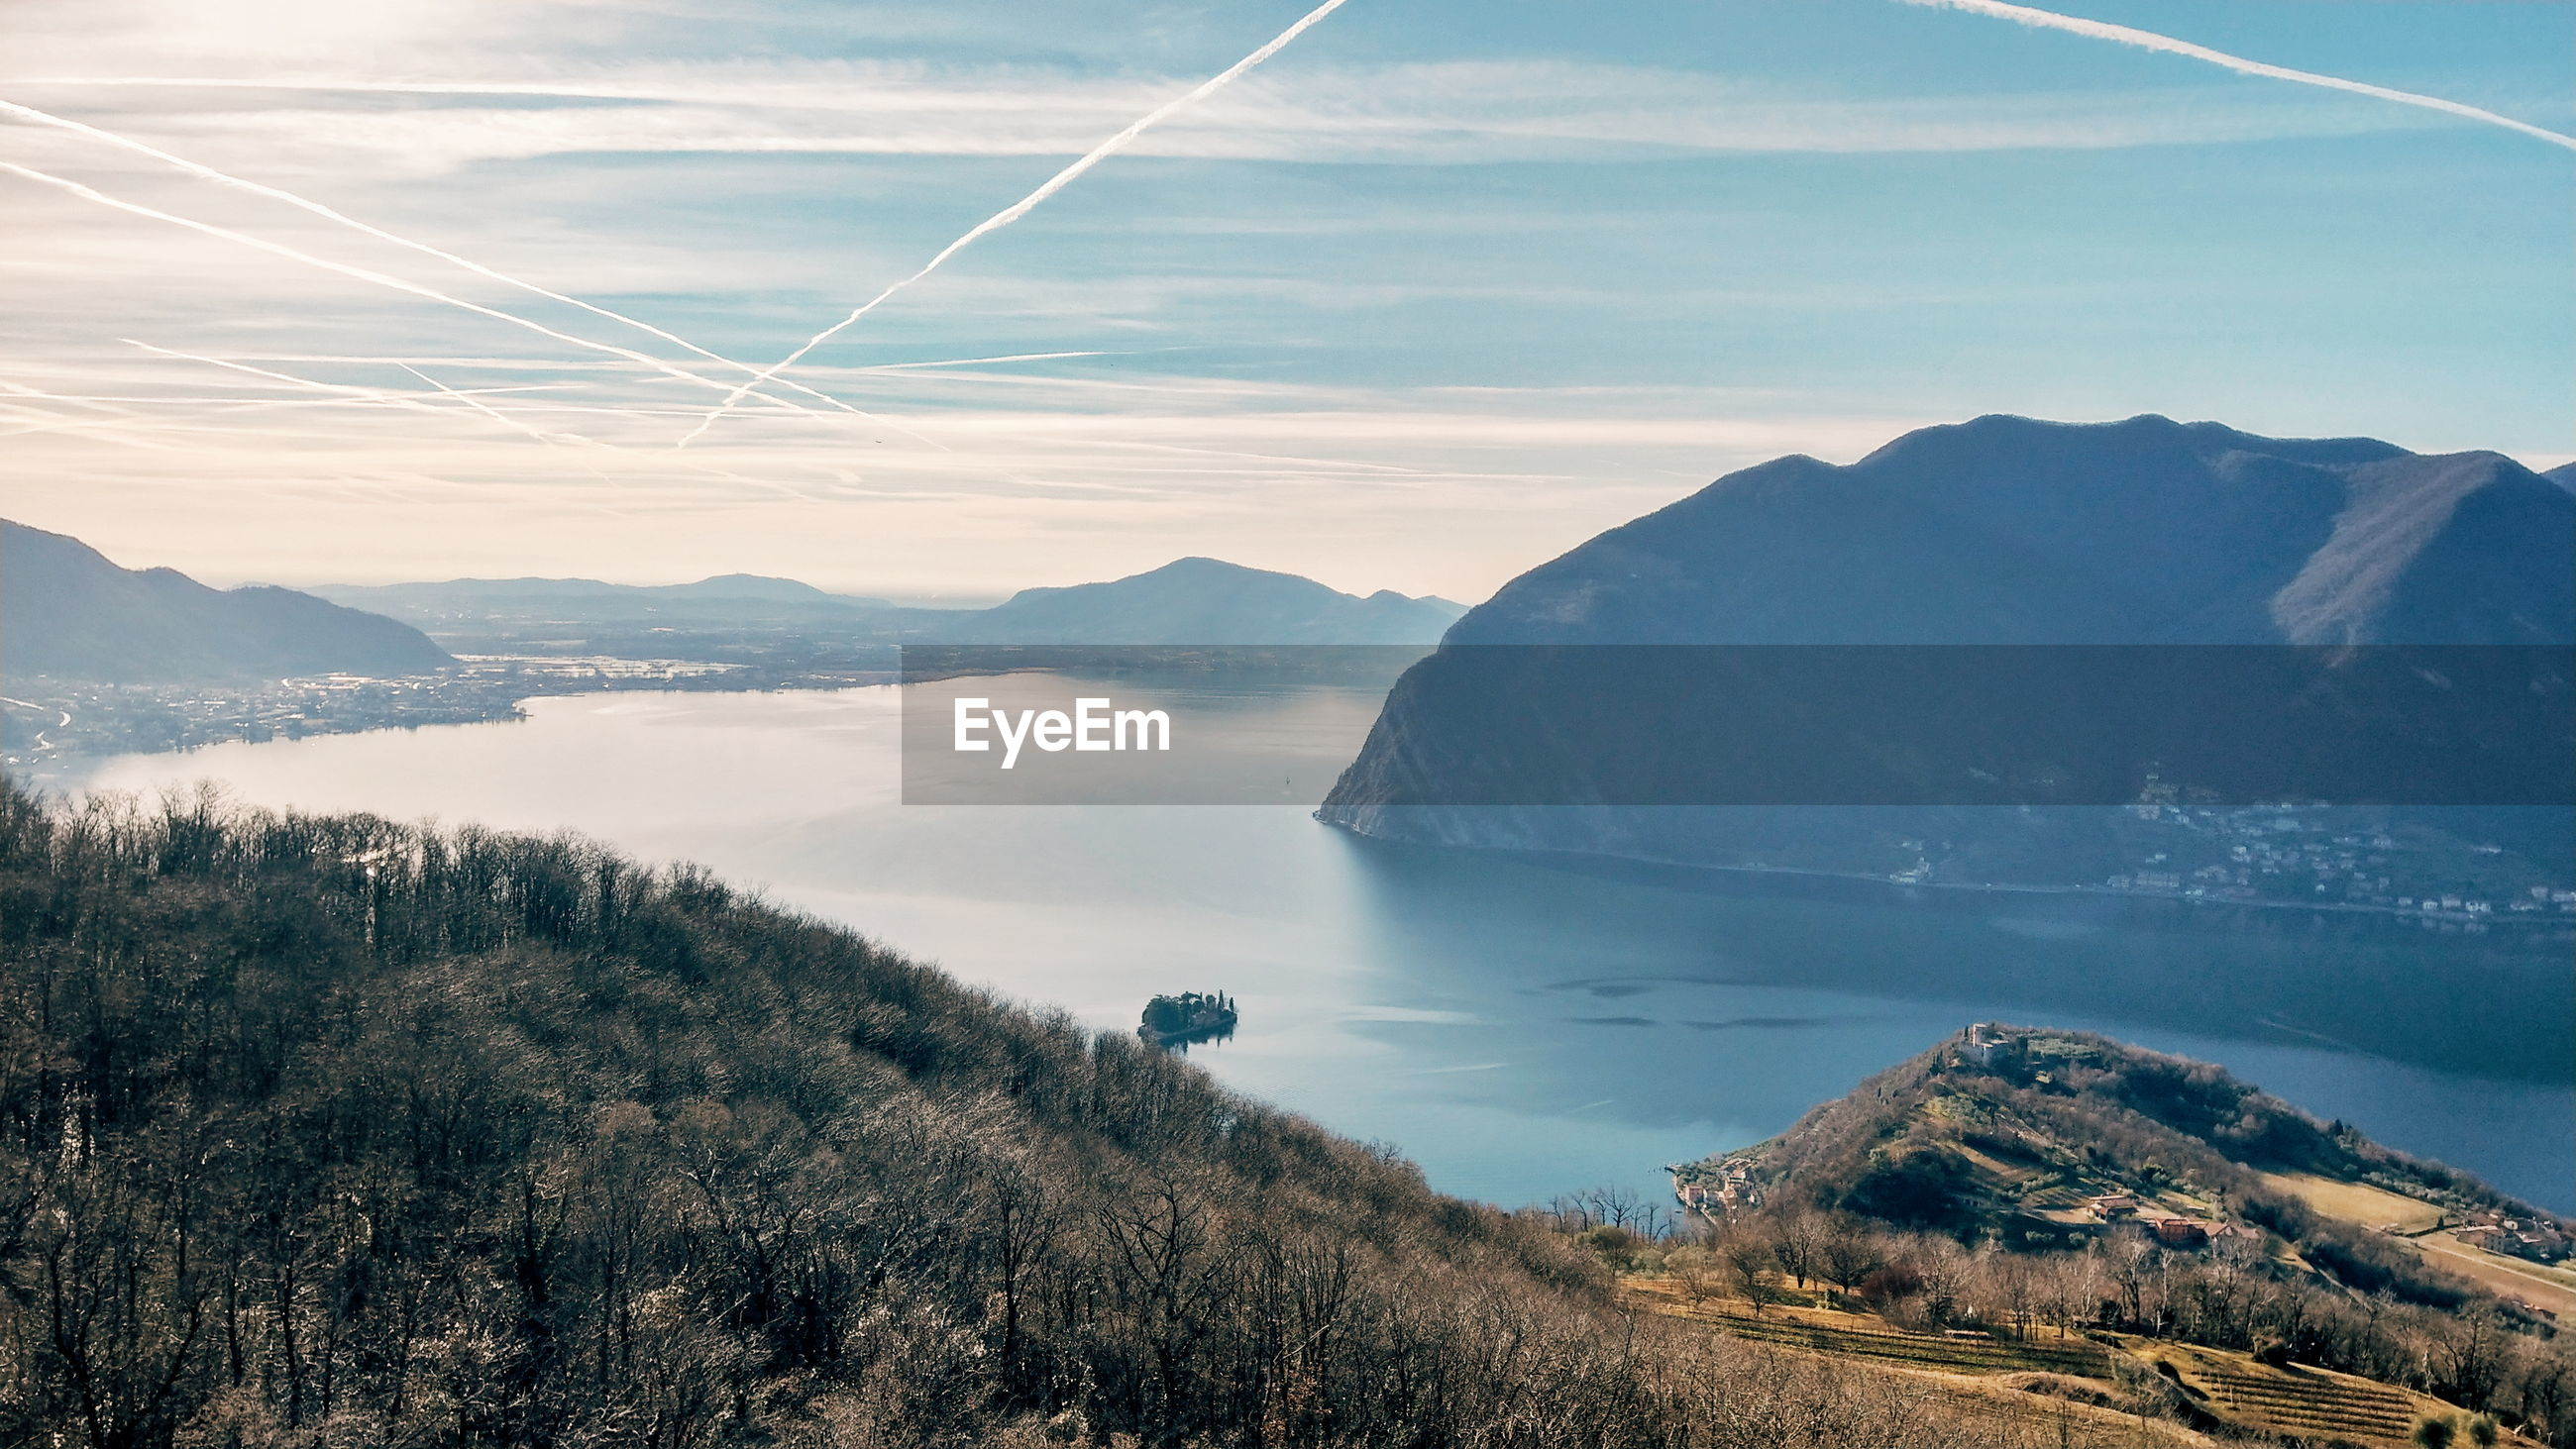 SCENIC VIEW OF SEA AND MOUNTAINS AGAINST VAPOR TRAILS IN SKY